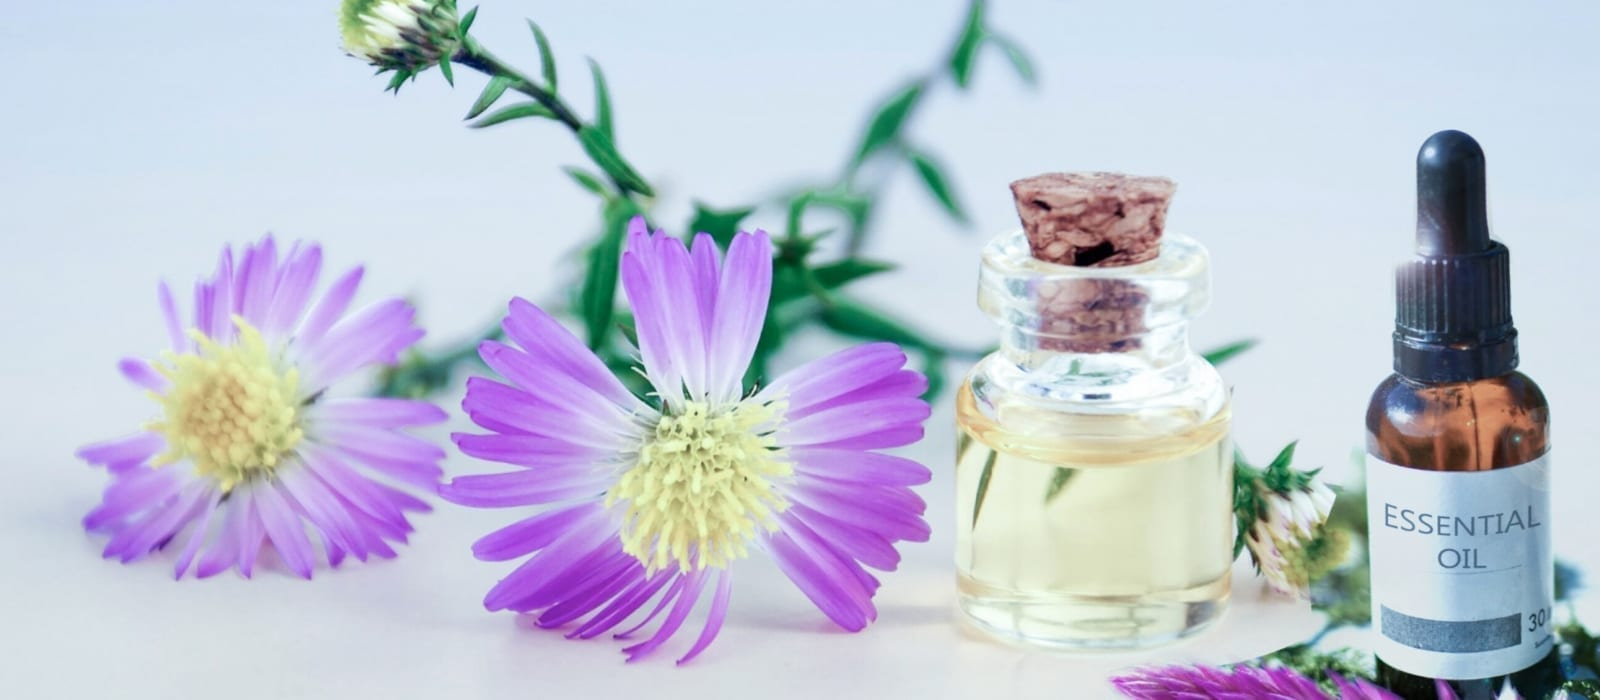 Lavender Essential Oils for Headaches